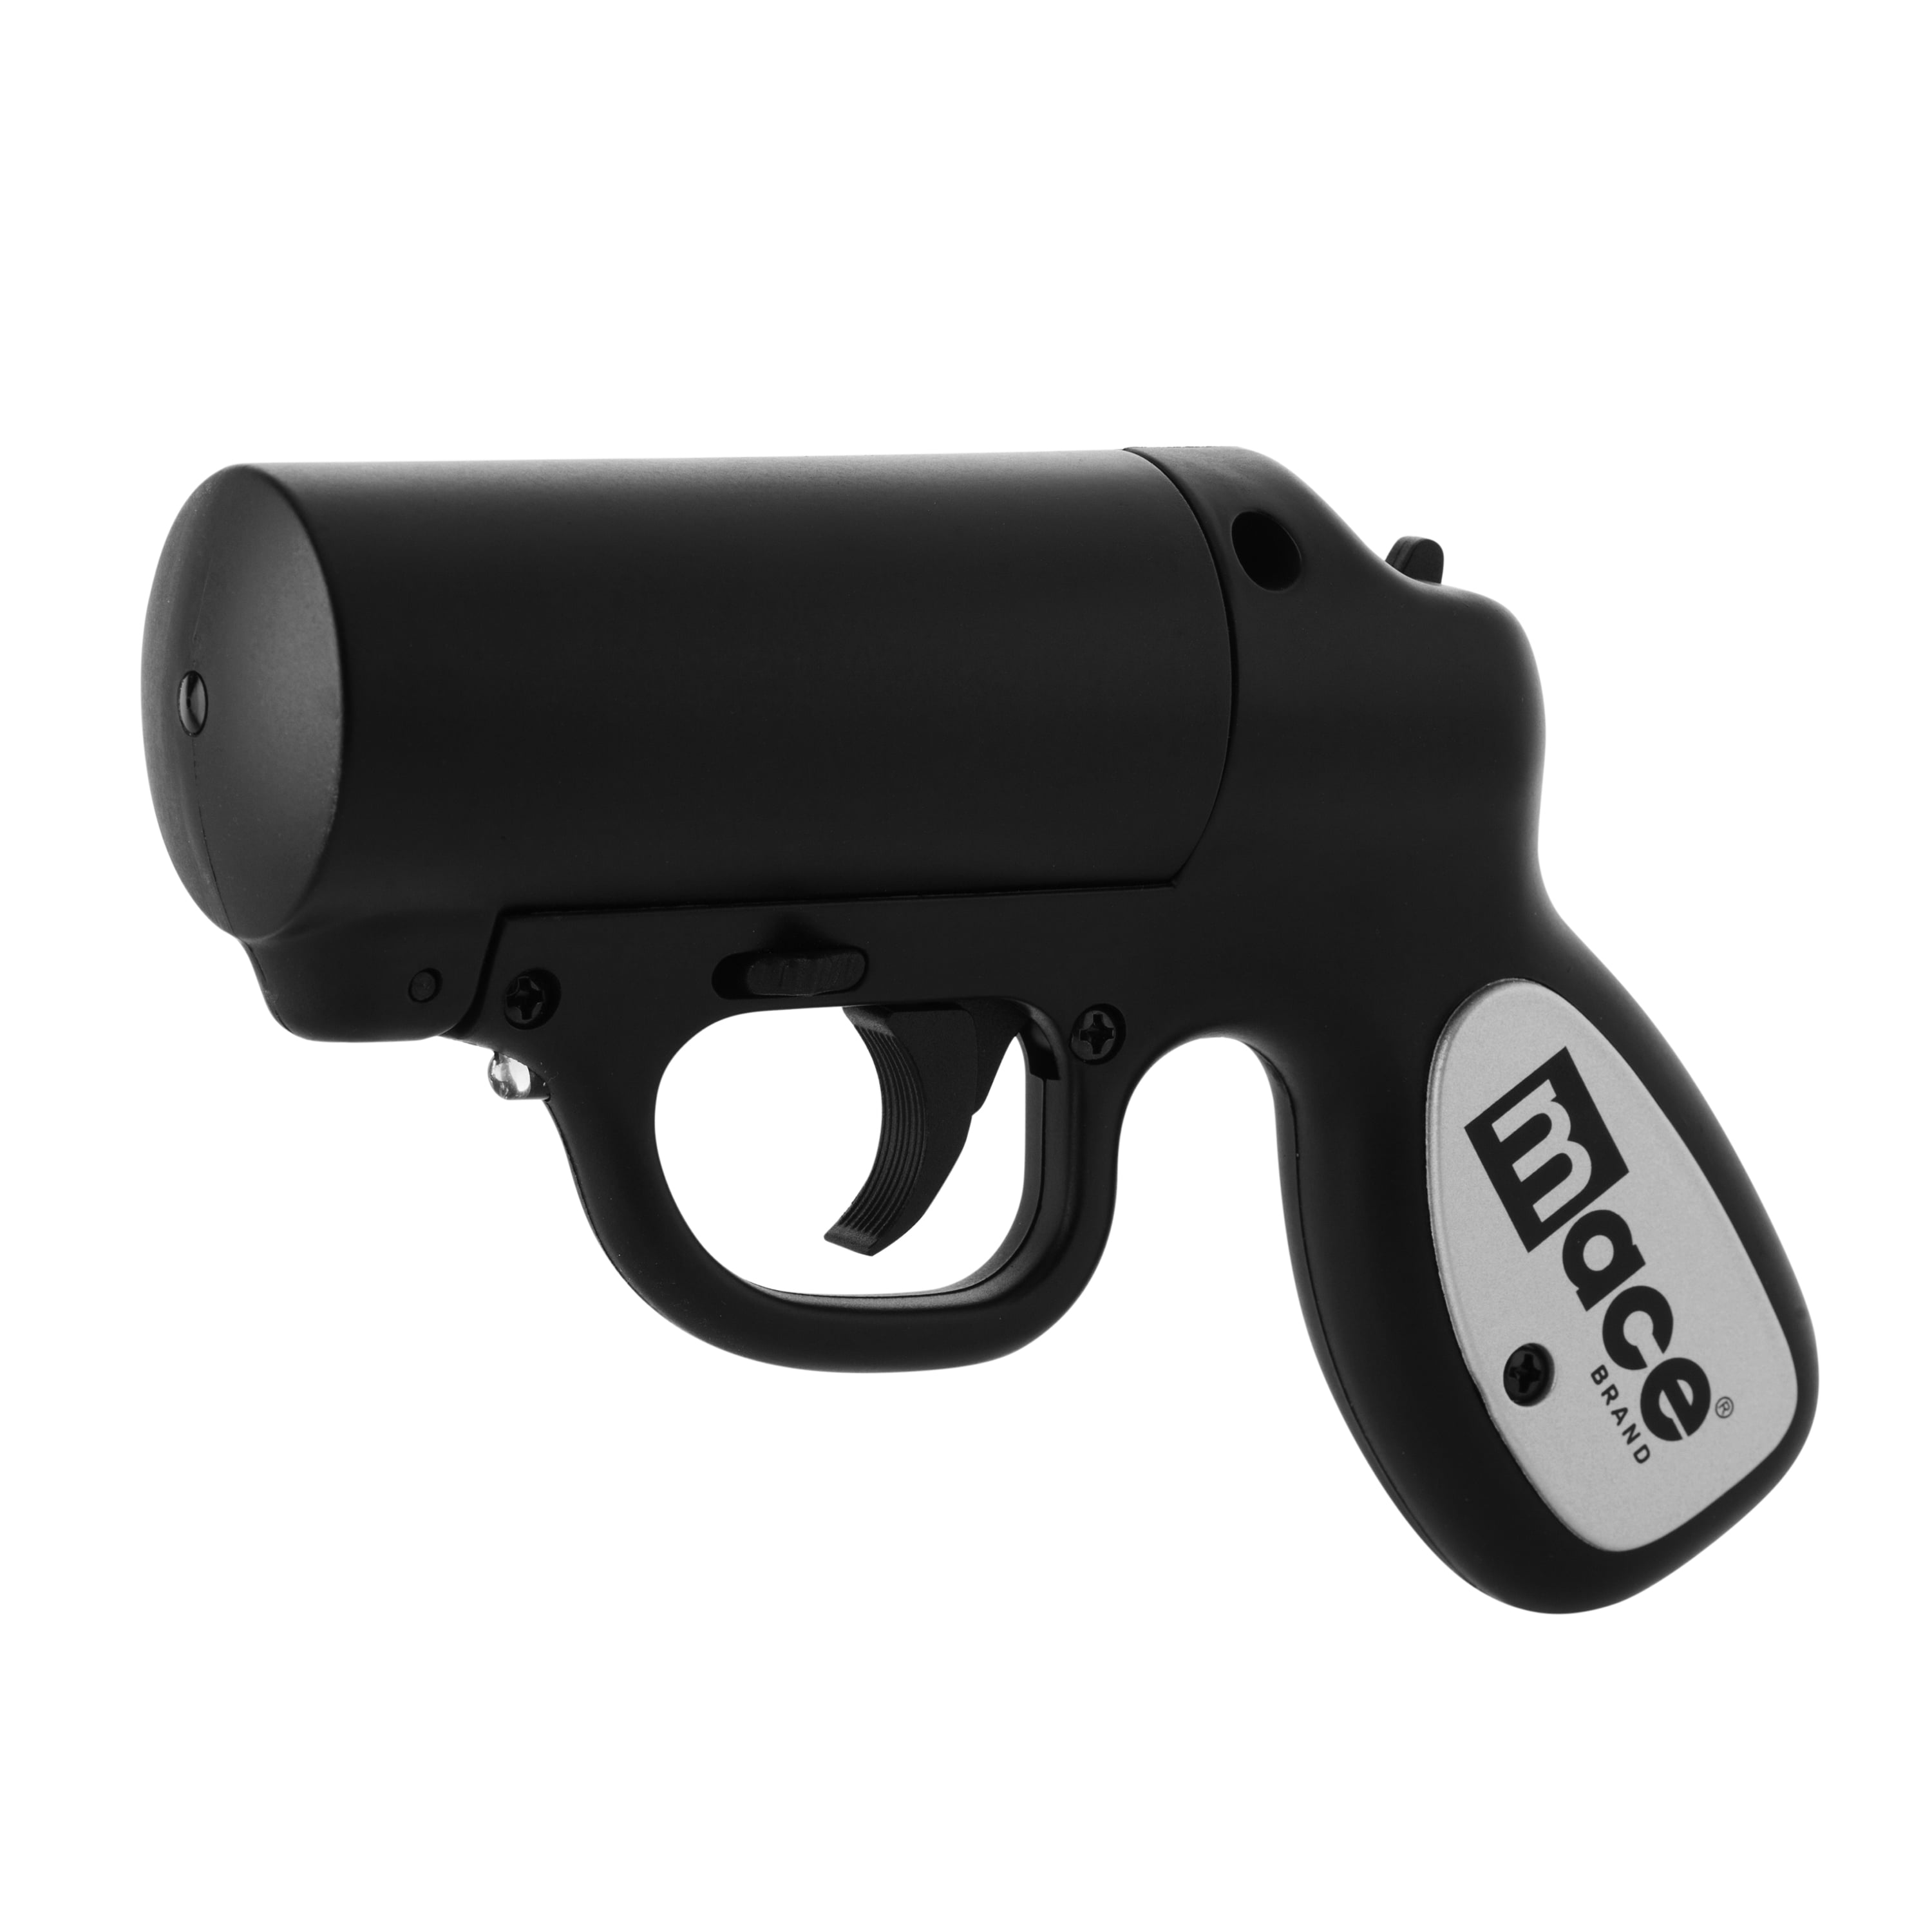 Mace Brand Pepper Gun Pepper Spray, Black with Strobe LED by Mace Security International